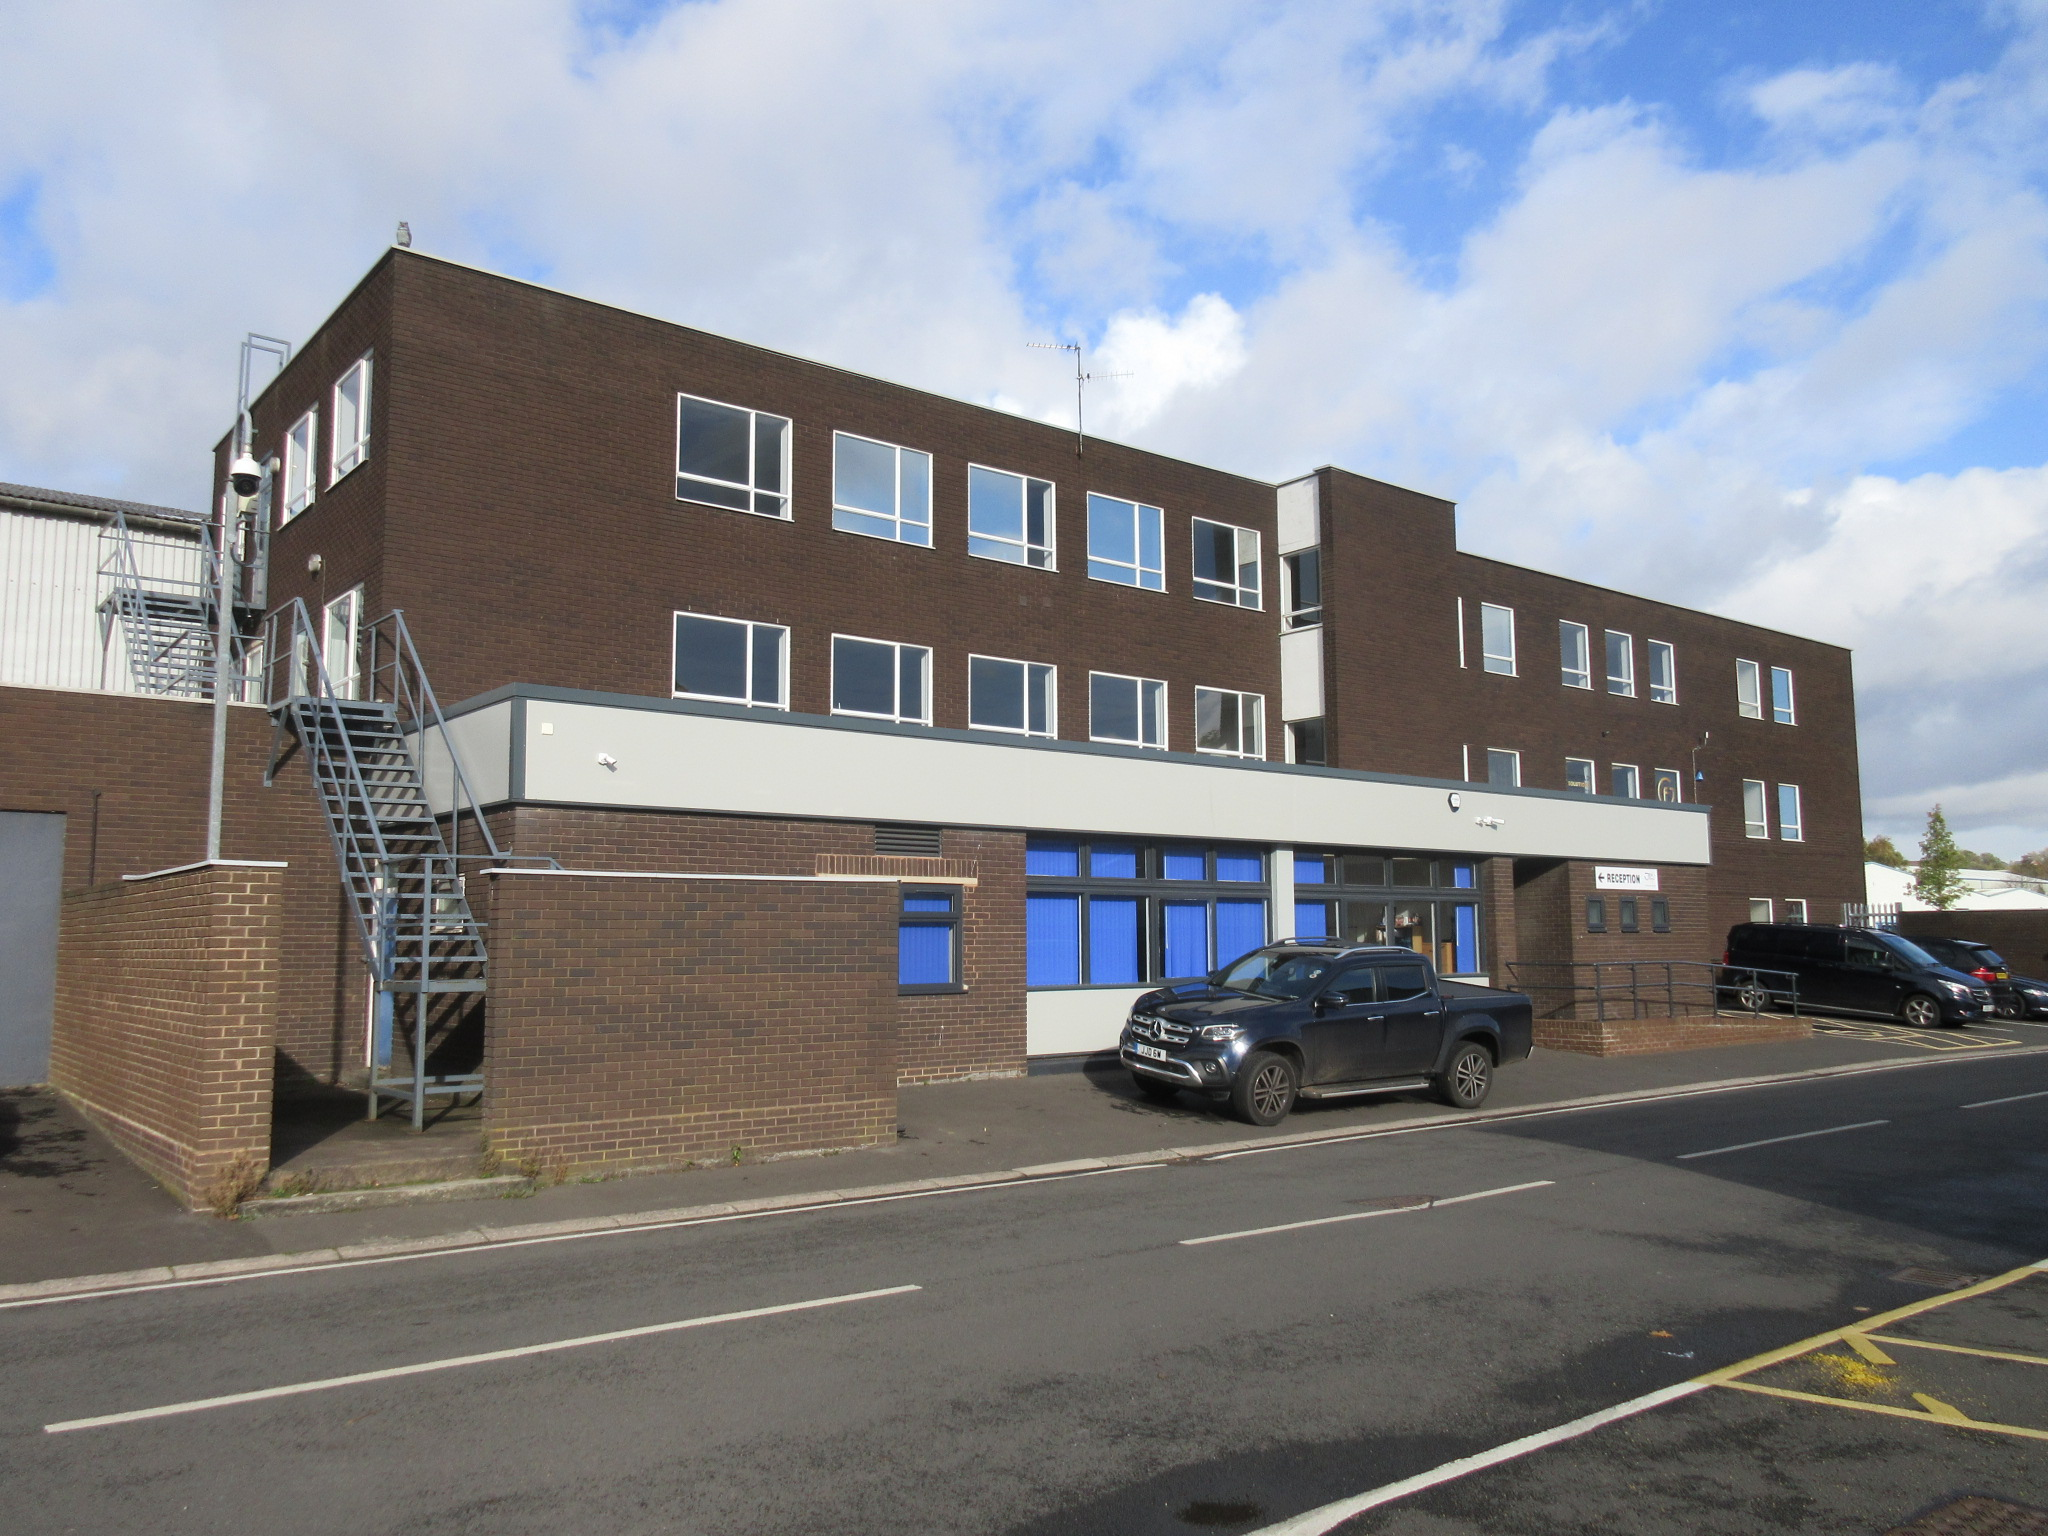 Offices at Unit 66 Kingswinford - Click for more details